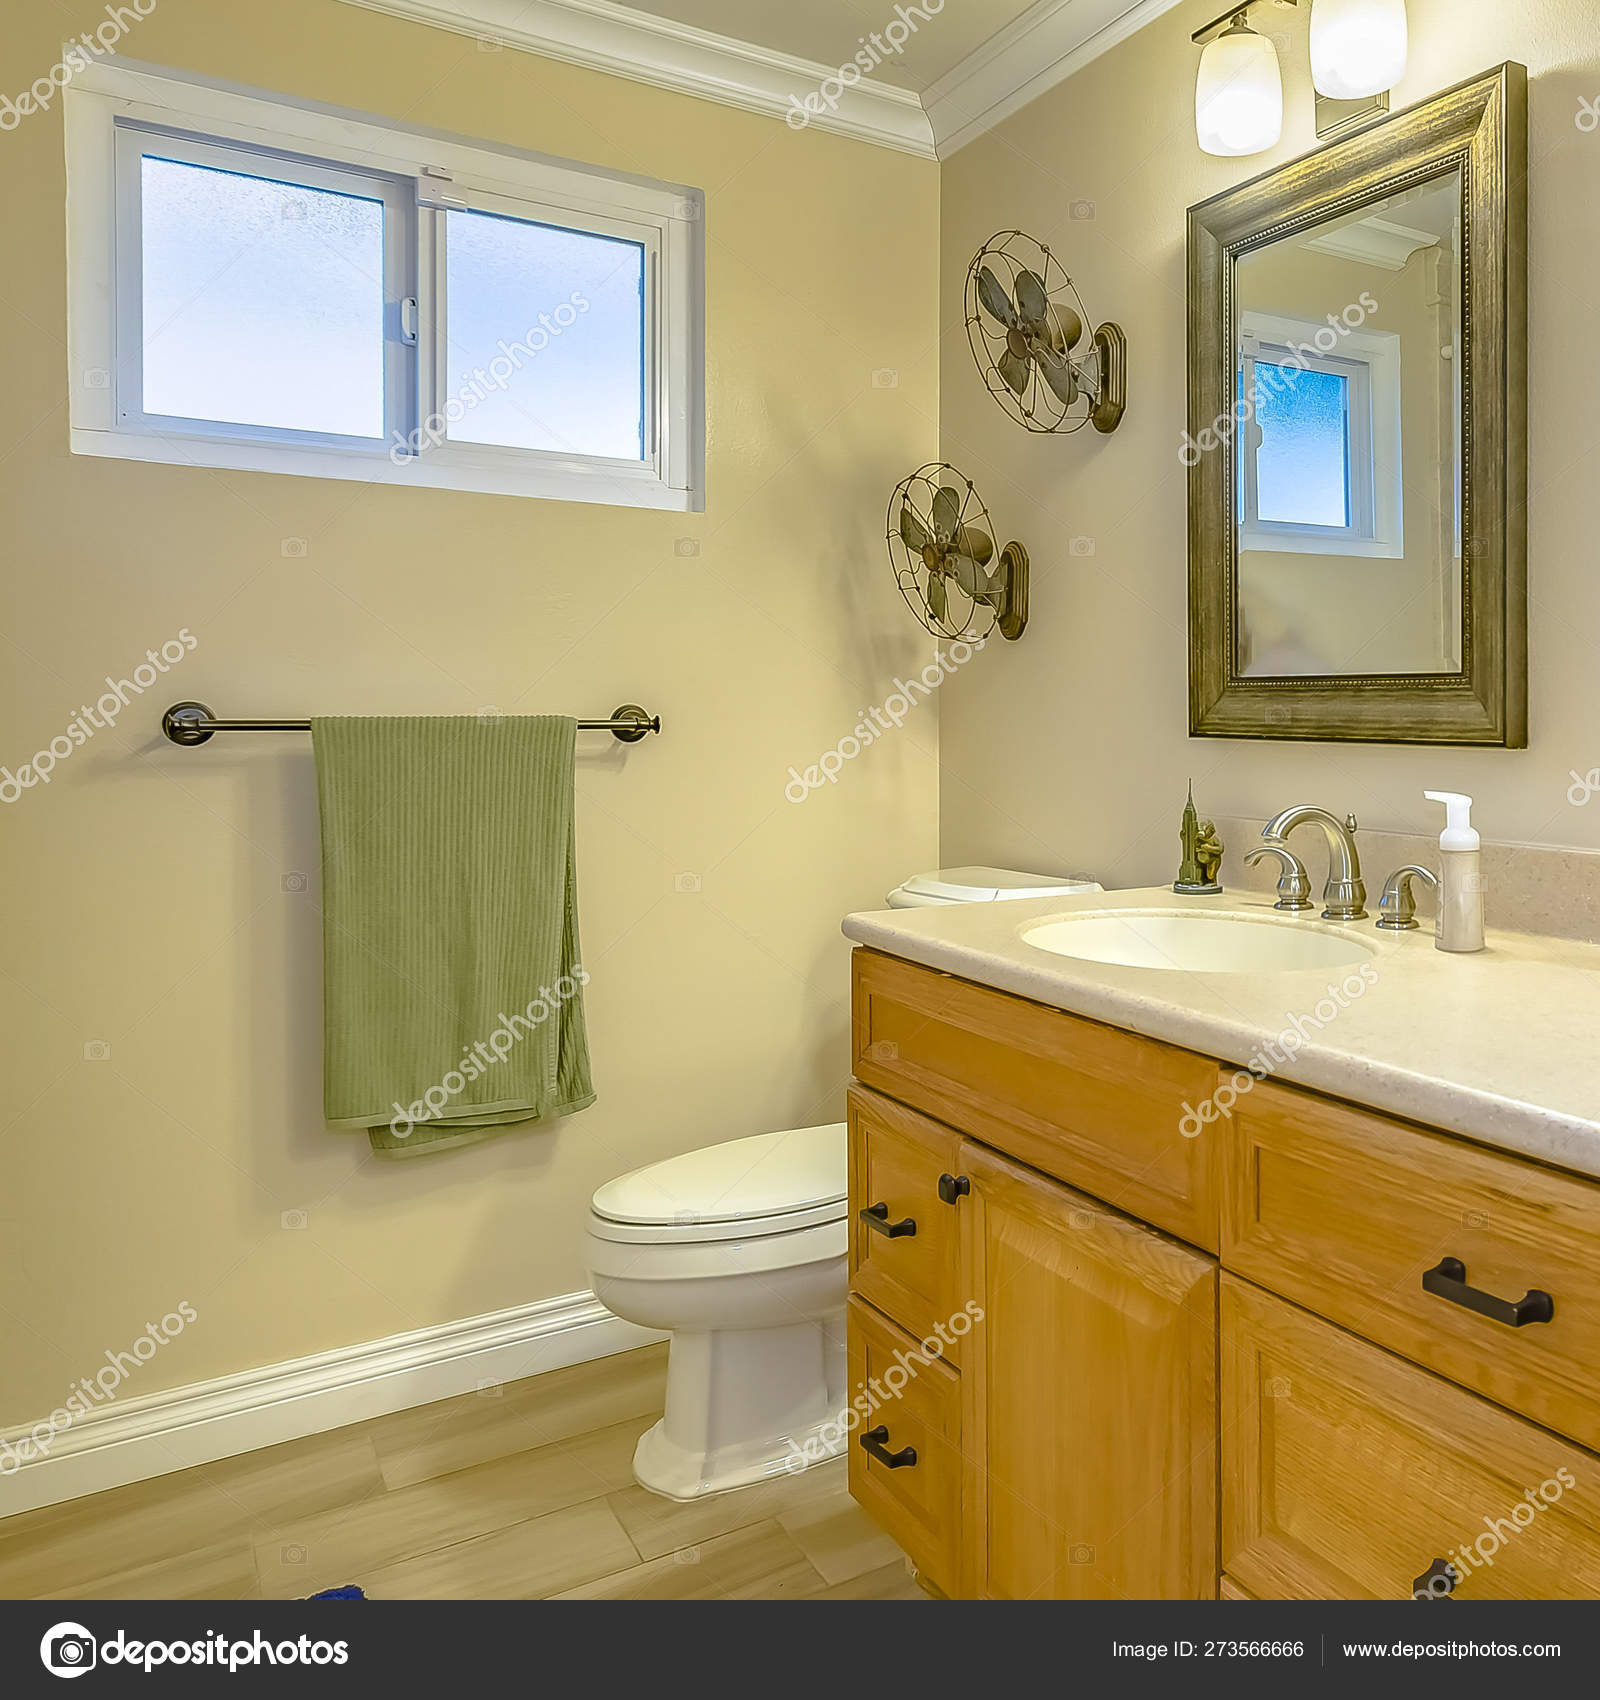 Square Double Vanity With Wooden Cabinets Inside A Bathroom With Small Window Stock Photo Image By Dropthepress Gmail Com 273566666